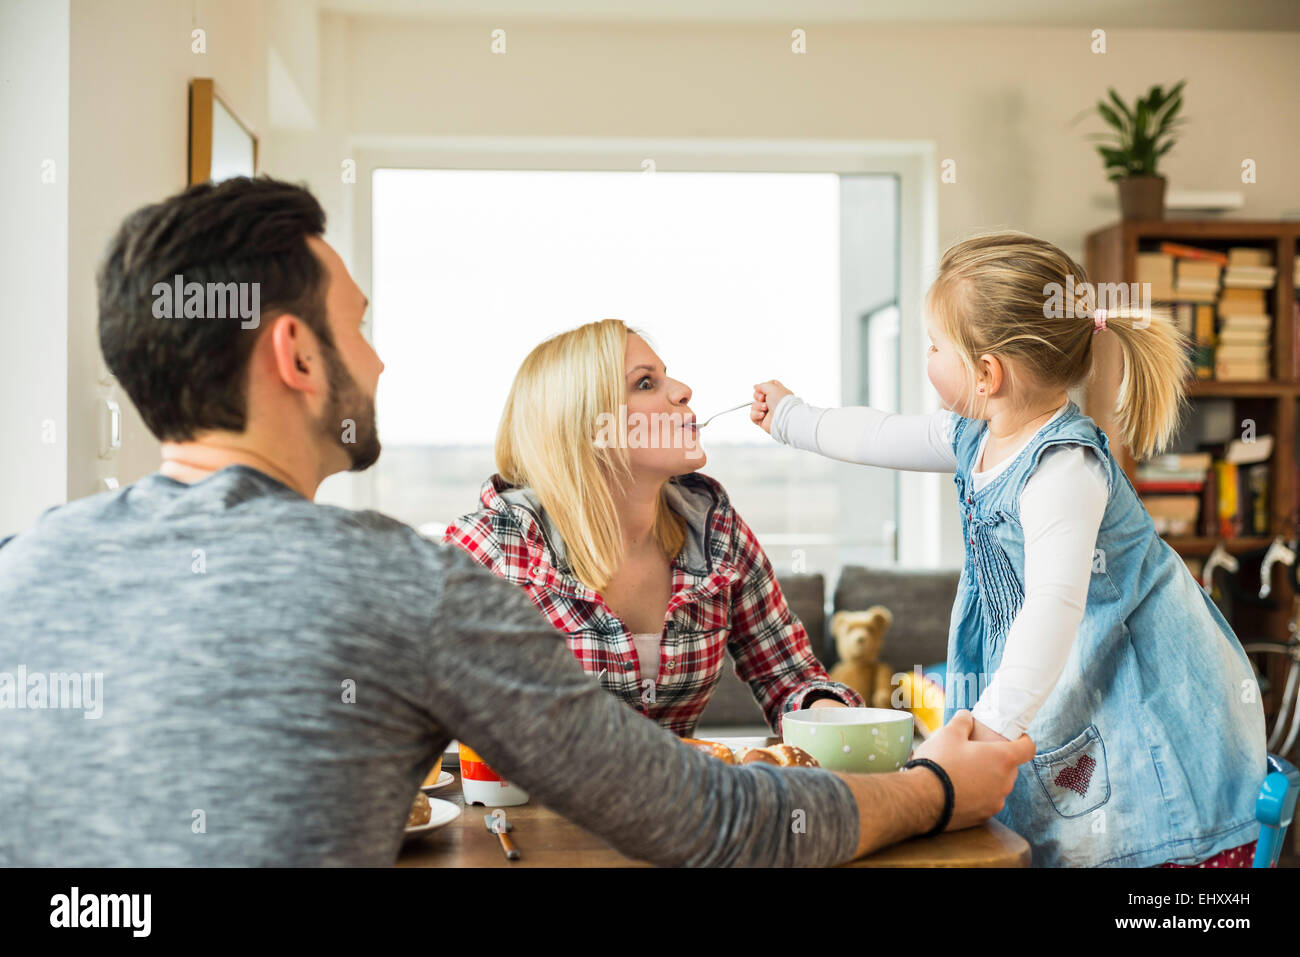 Daughter feeding mother at dining table - Stock Image